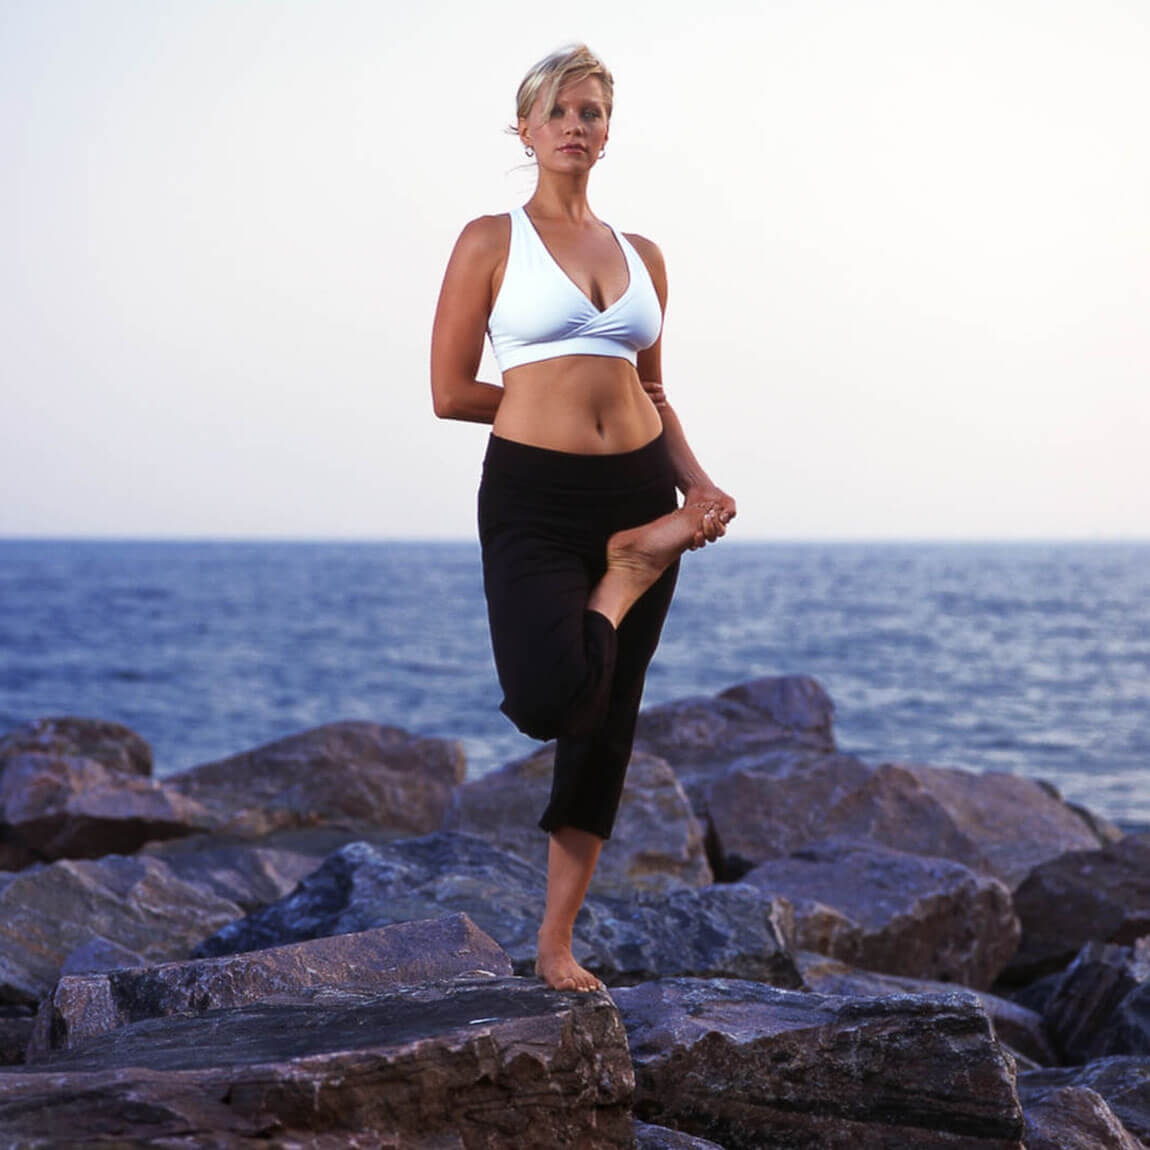 woman in a yoga pose by the sea